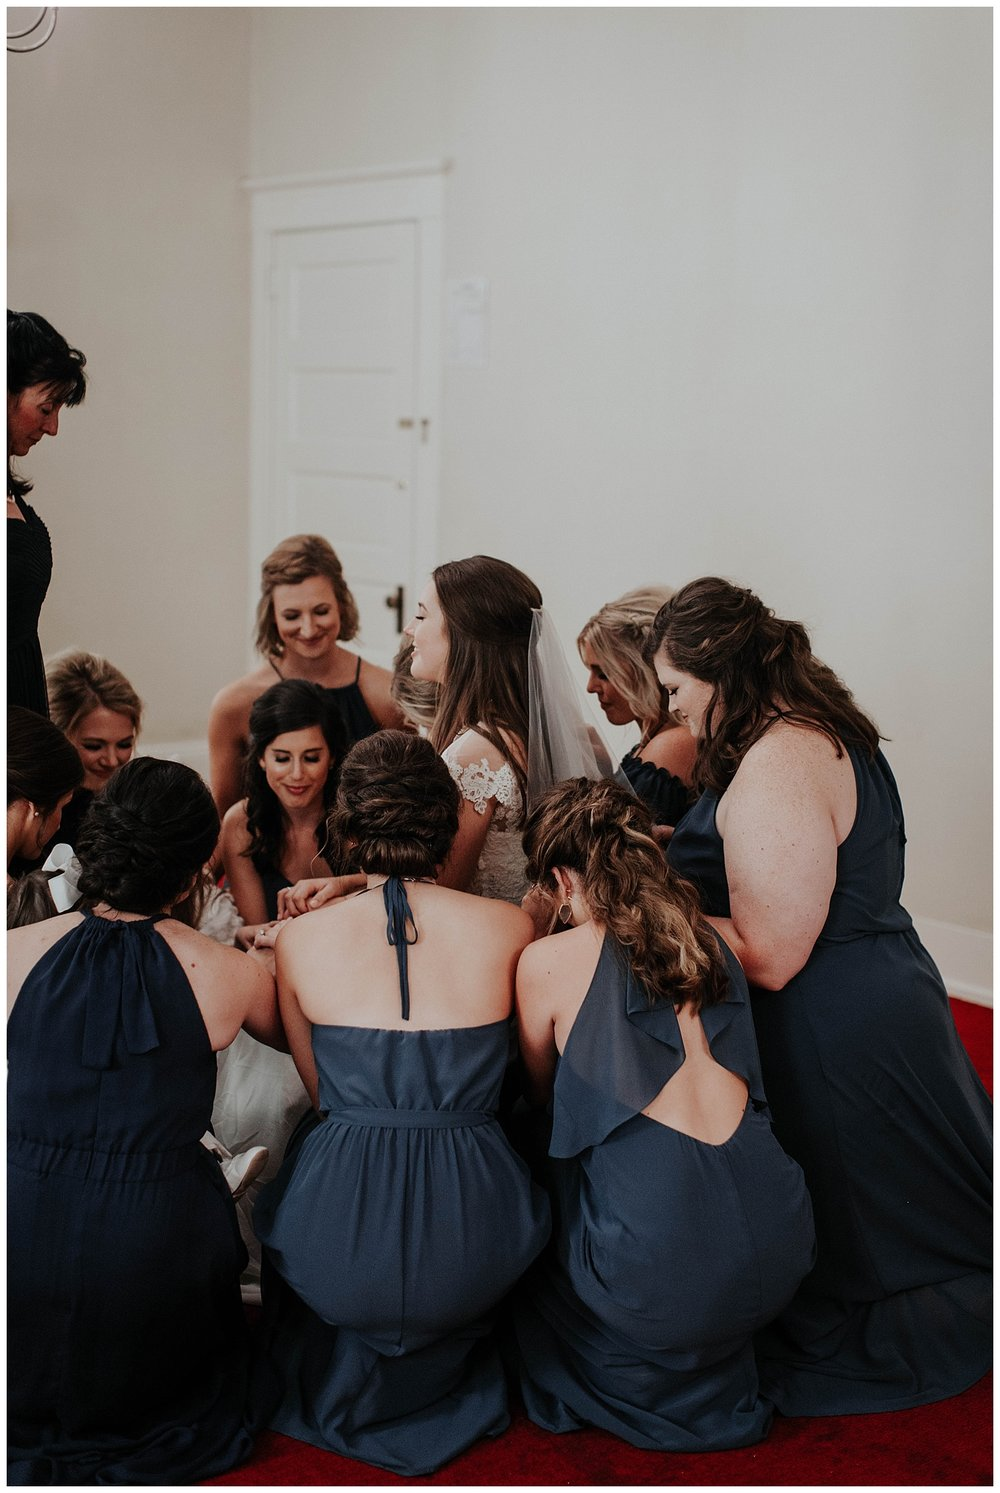 Madalynn Young Photography | Sarah Catherine + Will | Bridge Street Gallery and Loft | Atlanta Wedding Photographer_0317.jpg